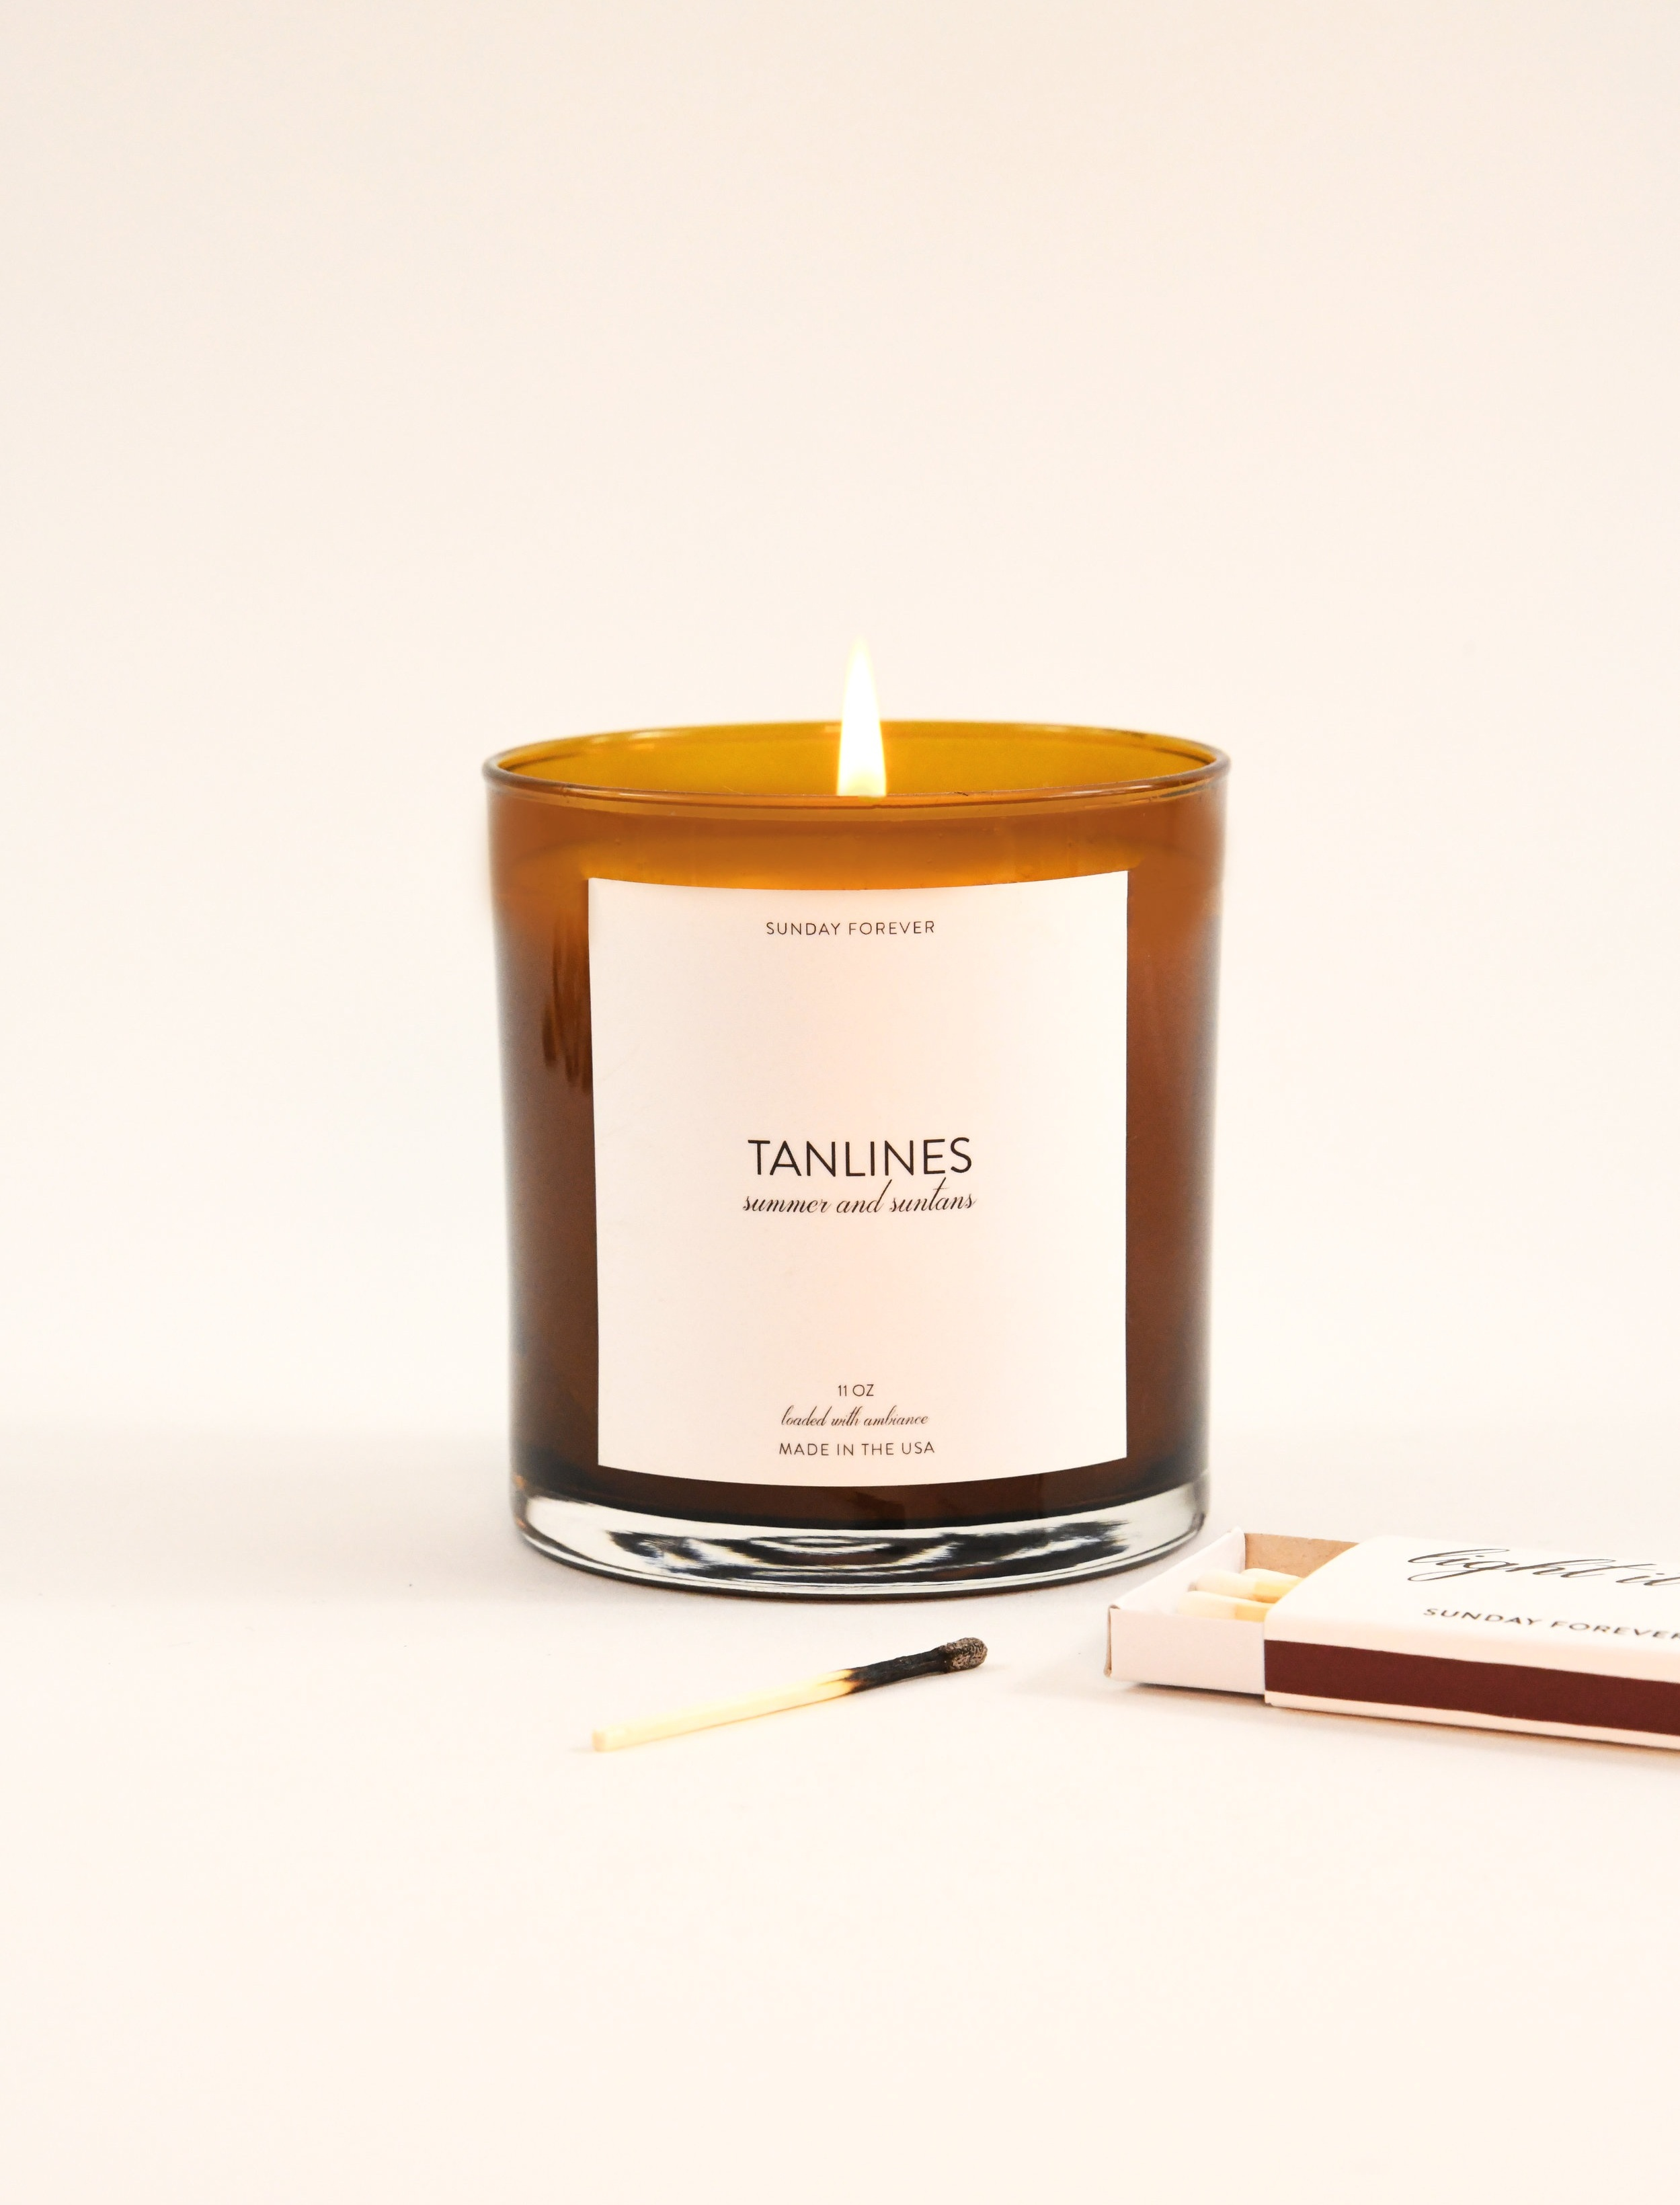 "SUNDAY FOREVER TANLINES CANDLE - ""Mom"" needs more than a ""Calgon Take Me Away"" bath. She needs a full-on tropical vacation. Our best-selling, cult-favorite Tanlines candle has been known to simulate the summer beach vacation experience. It smells like summer and suntans. When lit she'll feel like she's lounging on the lanai, umbrella drink in-hand, watching the sunset while Tom Hardy fans her with giant palm leaves. Don't you want to be Mom's favorite child? This will do it."